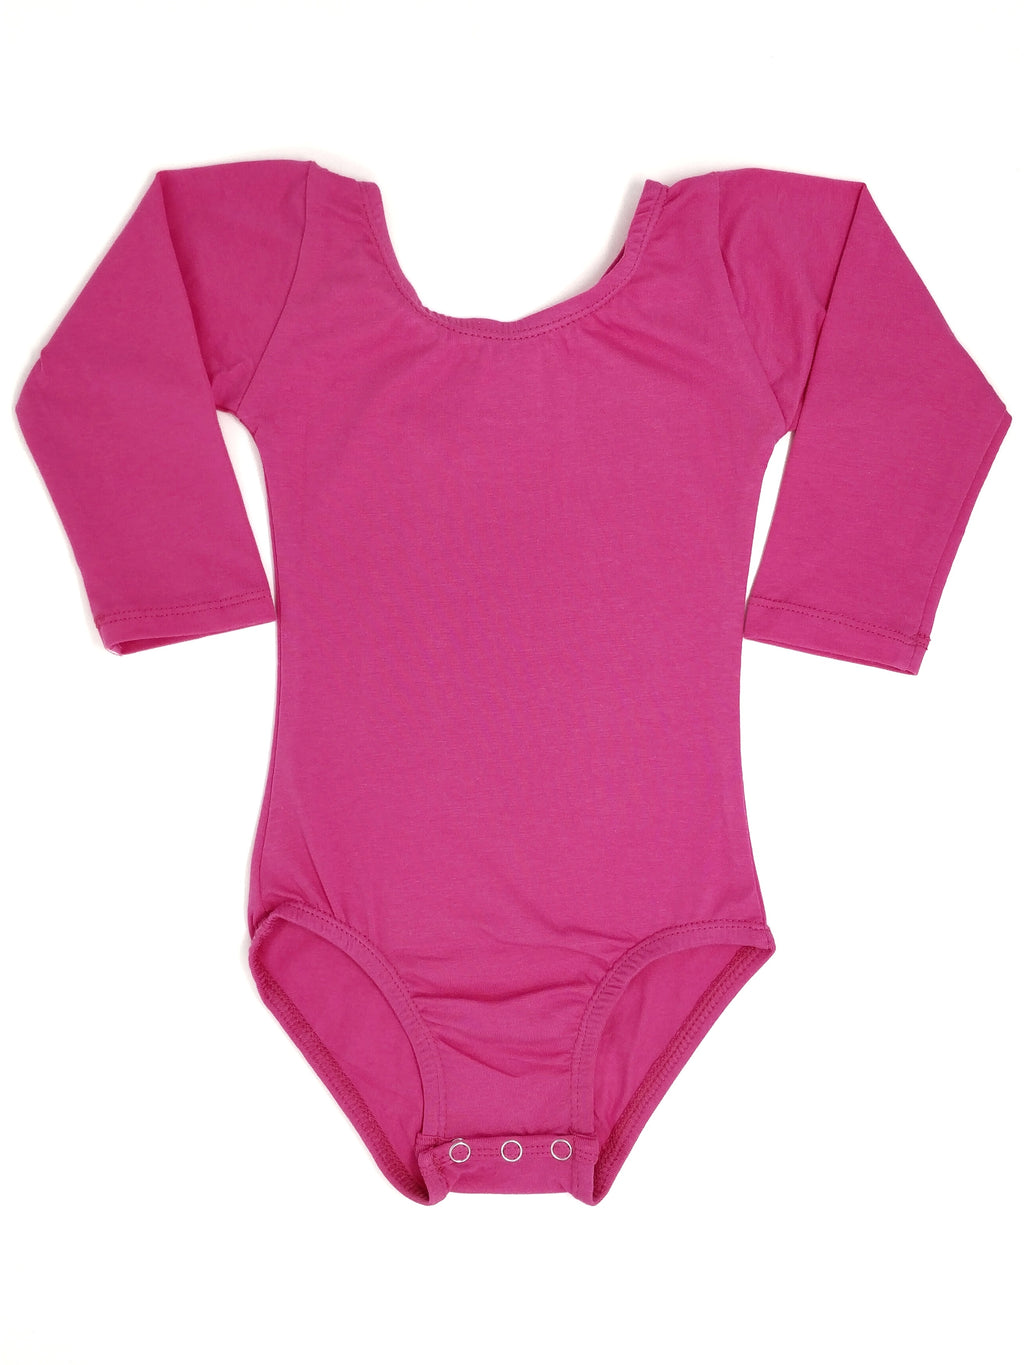 HOT PINK | LONG SLEEVE LEOTARD